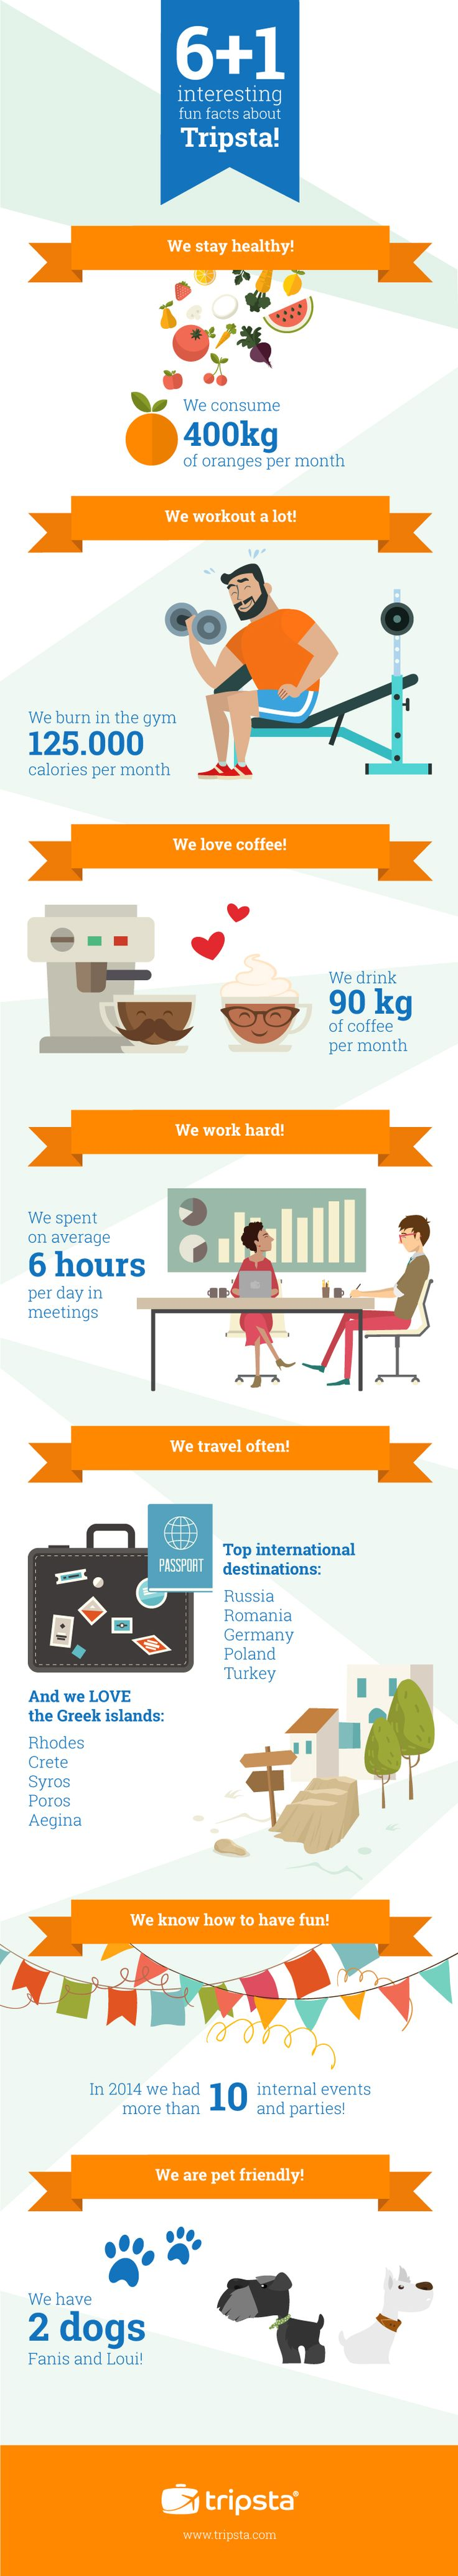 6+1 interesting fun facts about Tripsta! #Infographic #tripsta